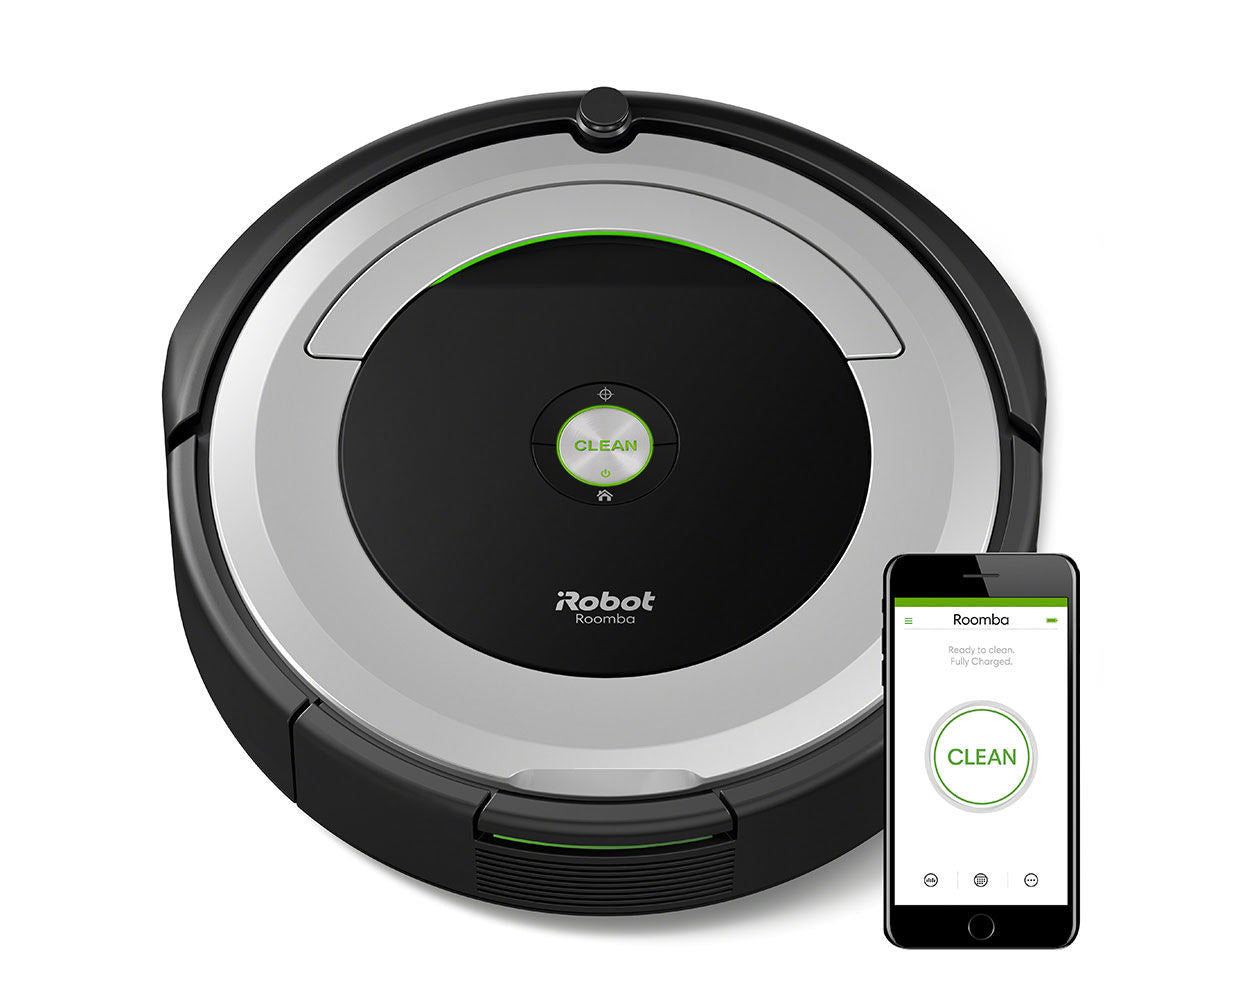 מקורי iRobot Roomba 960 Vacuum Cleaner - Find Unique Christmas Gifts AP-11